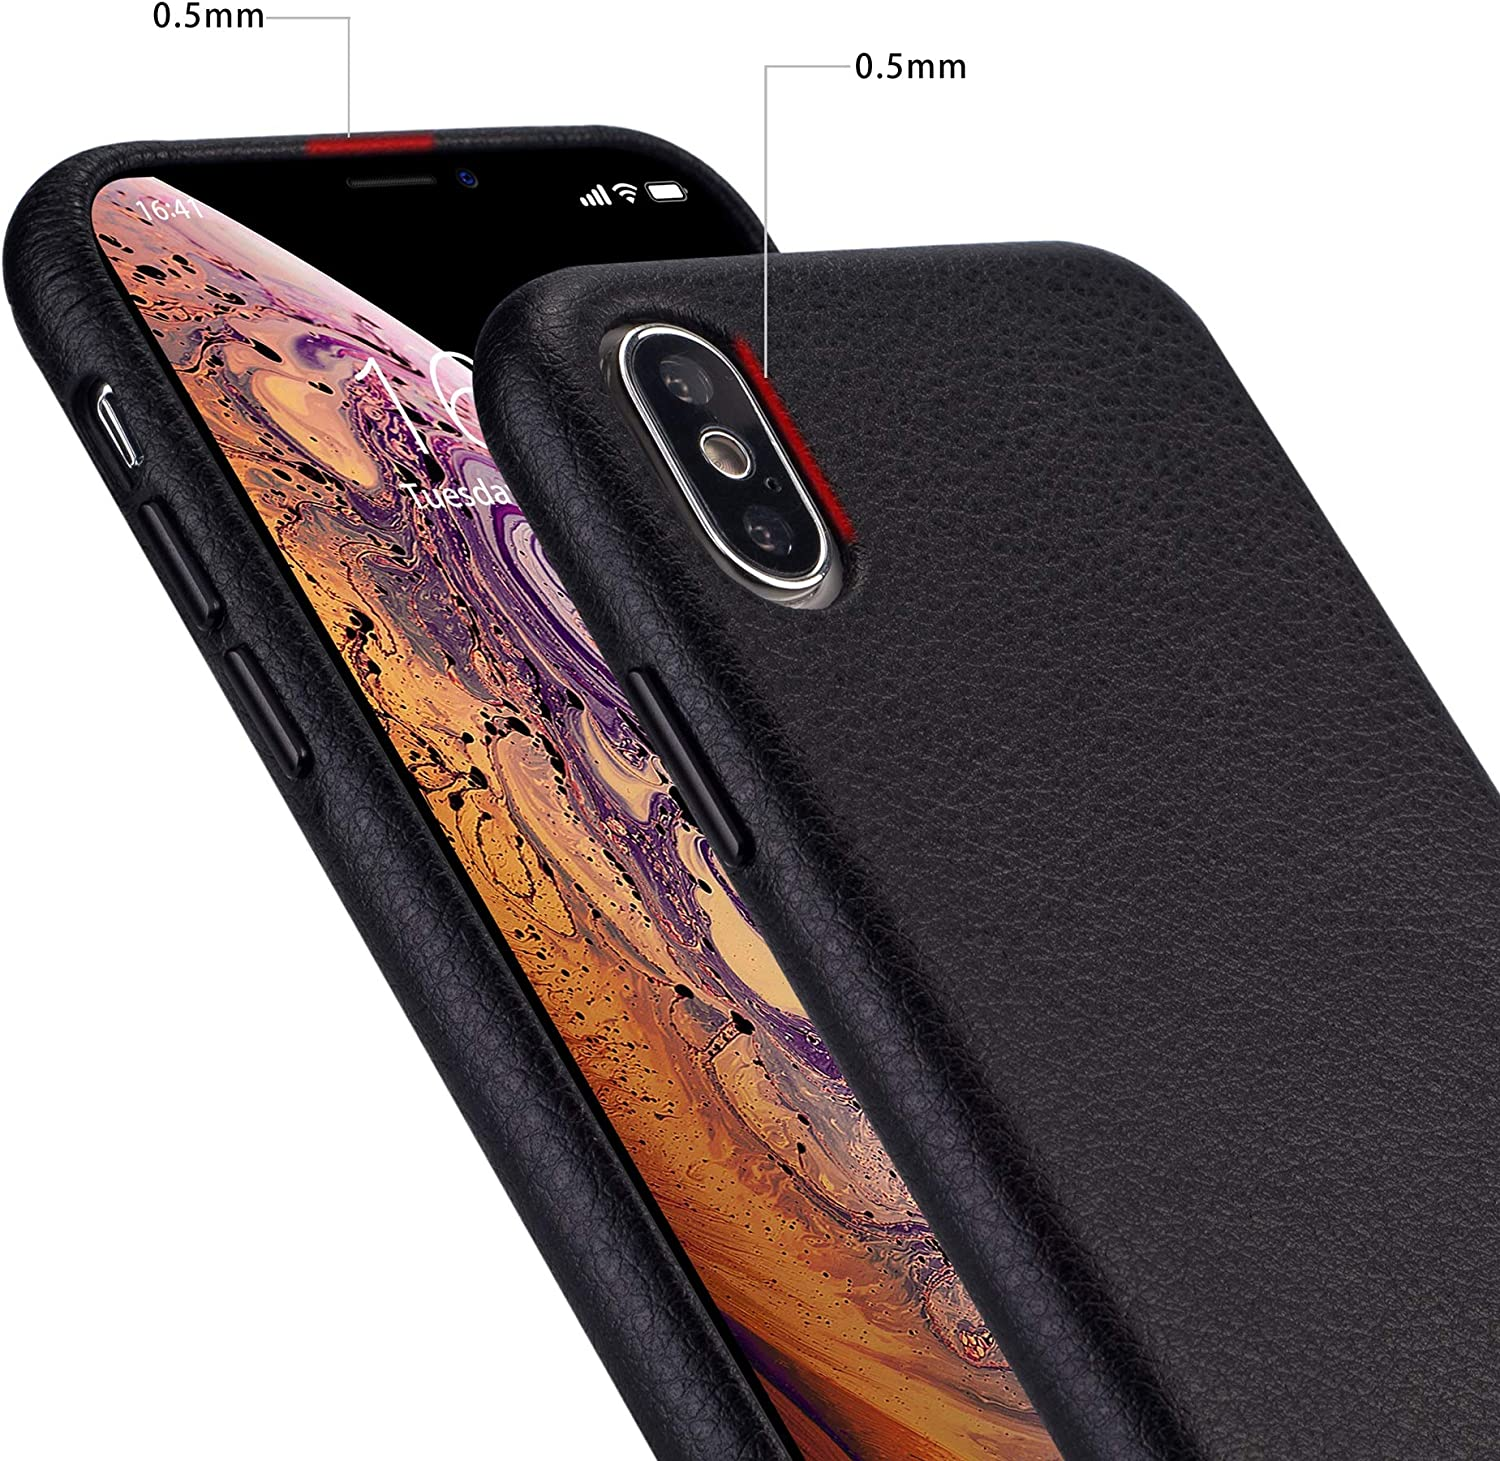 rejazz iPhone x Case iPhone Xs Case Anti-Scratch iPhone x Cover iPhone Xs Cover Genuine Leather Apple iPhone Cases for iPhone x/xs (5.8 Inch)(Black)